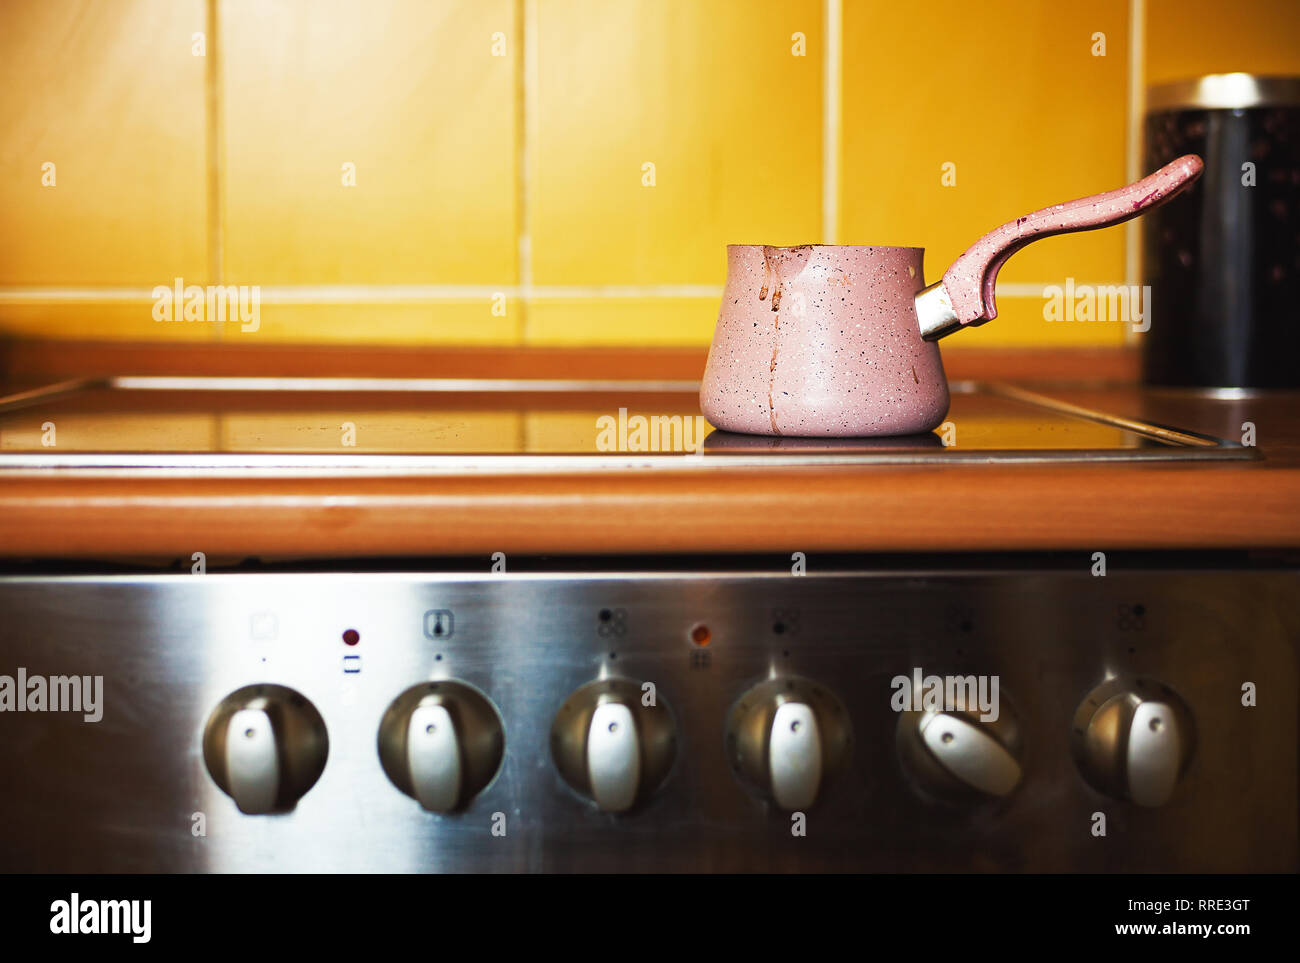 One coffee pot on kitchen stove, ordinary lifestyle scene. - Stock Image